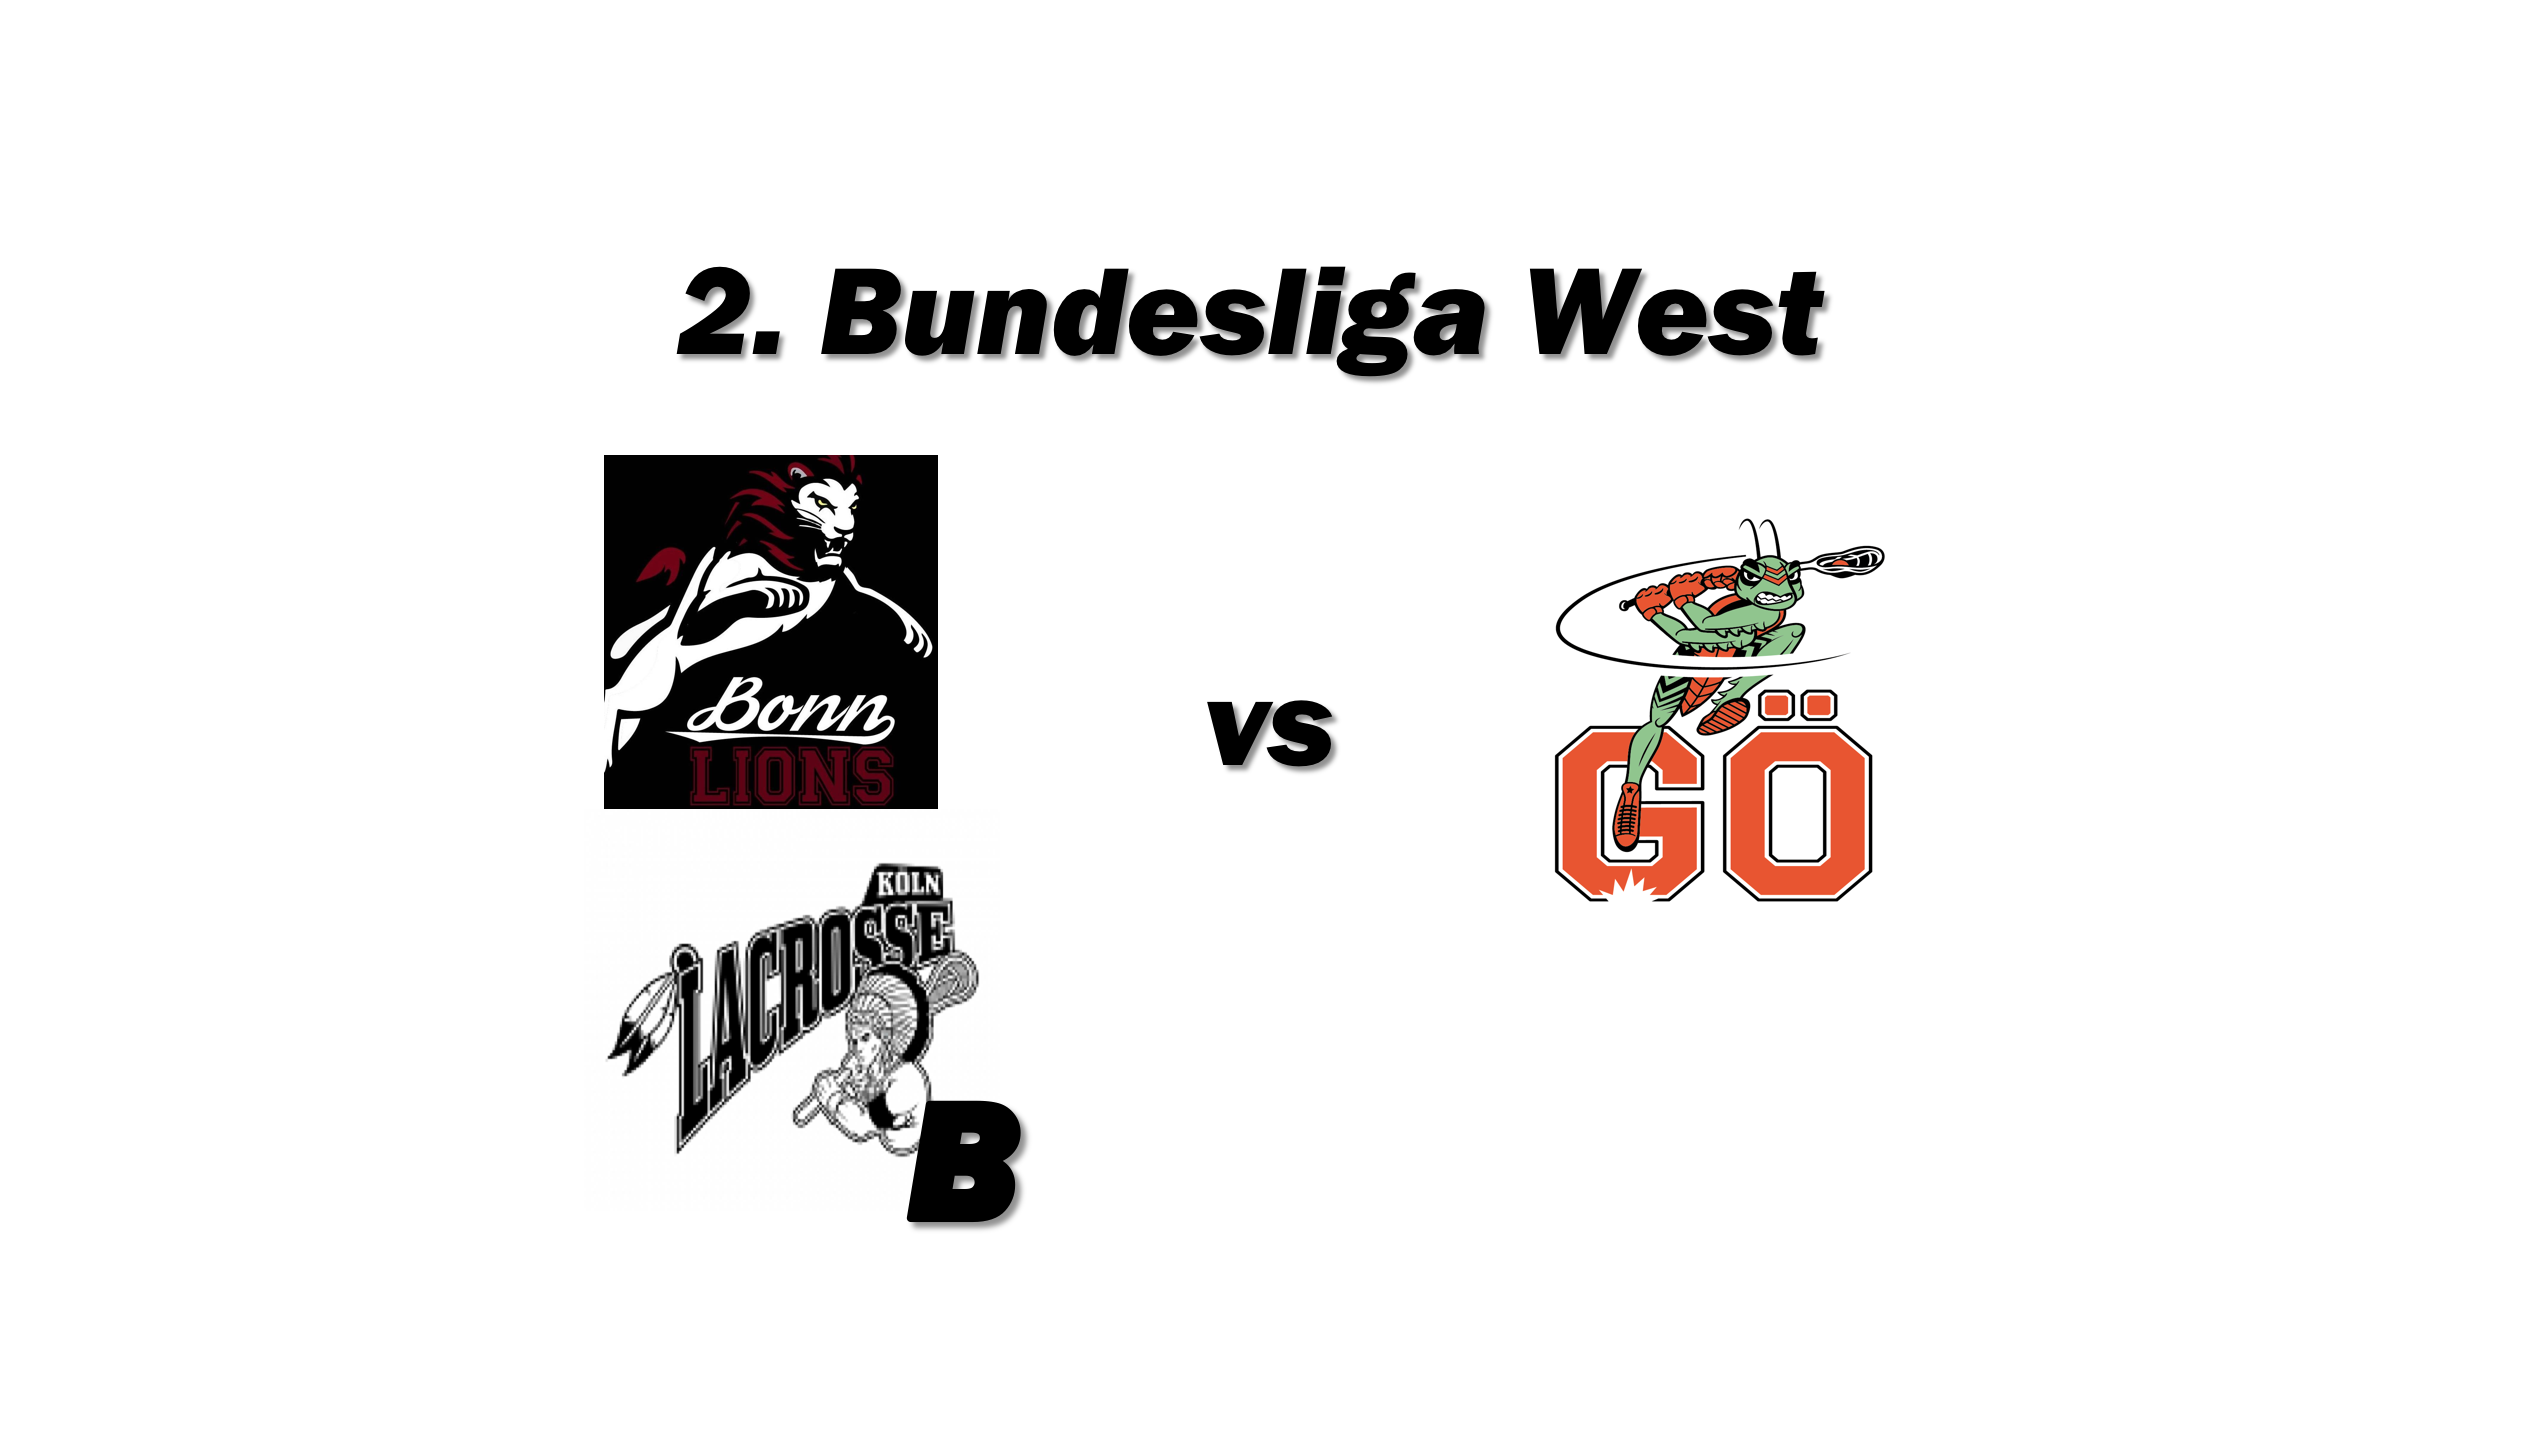 2. Bundesliga West der Damen